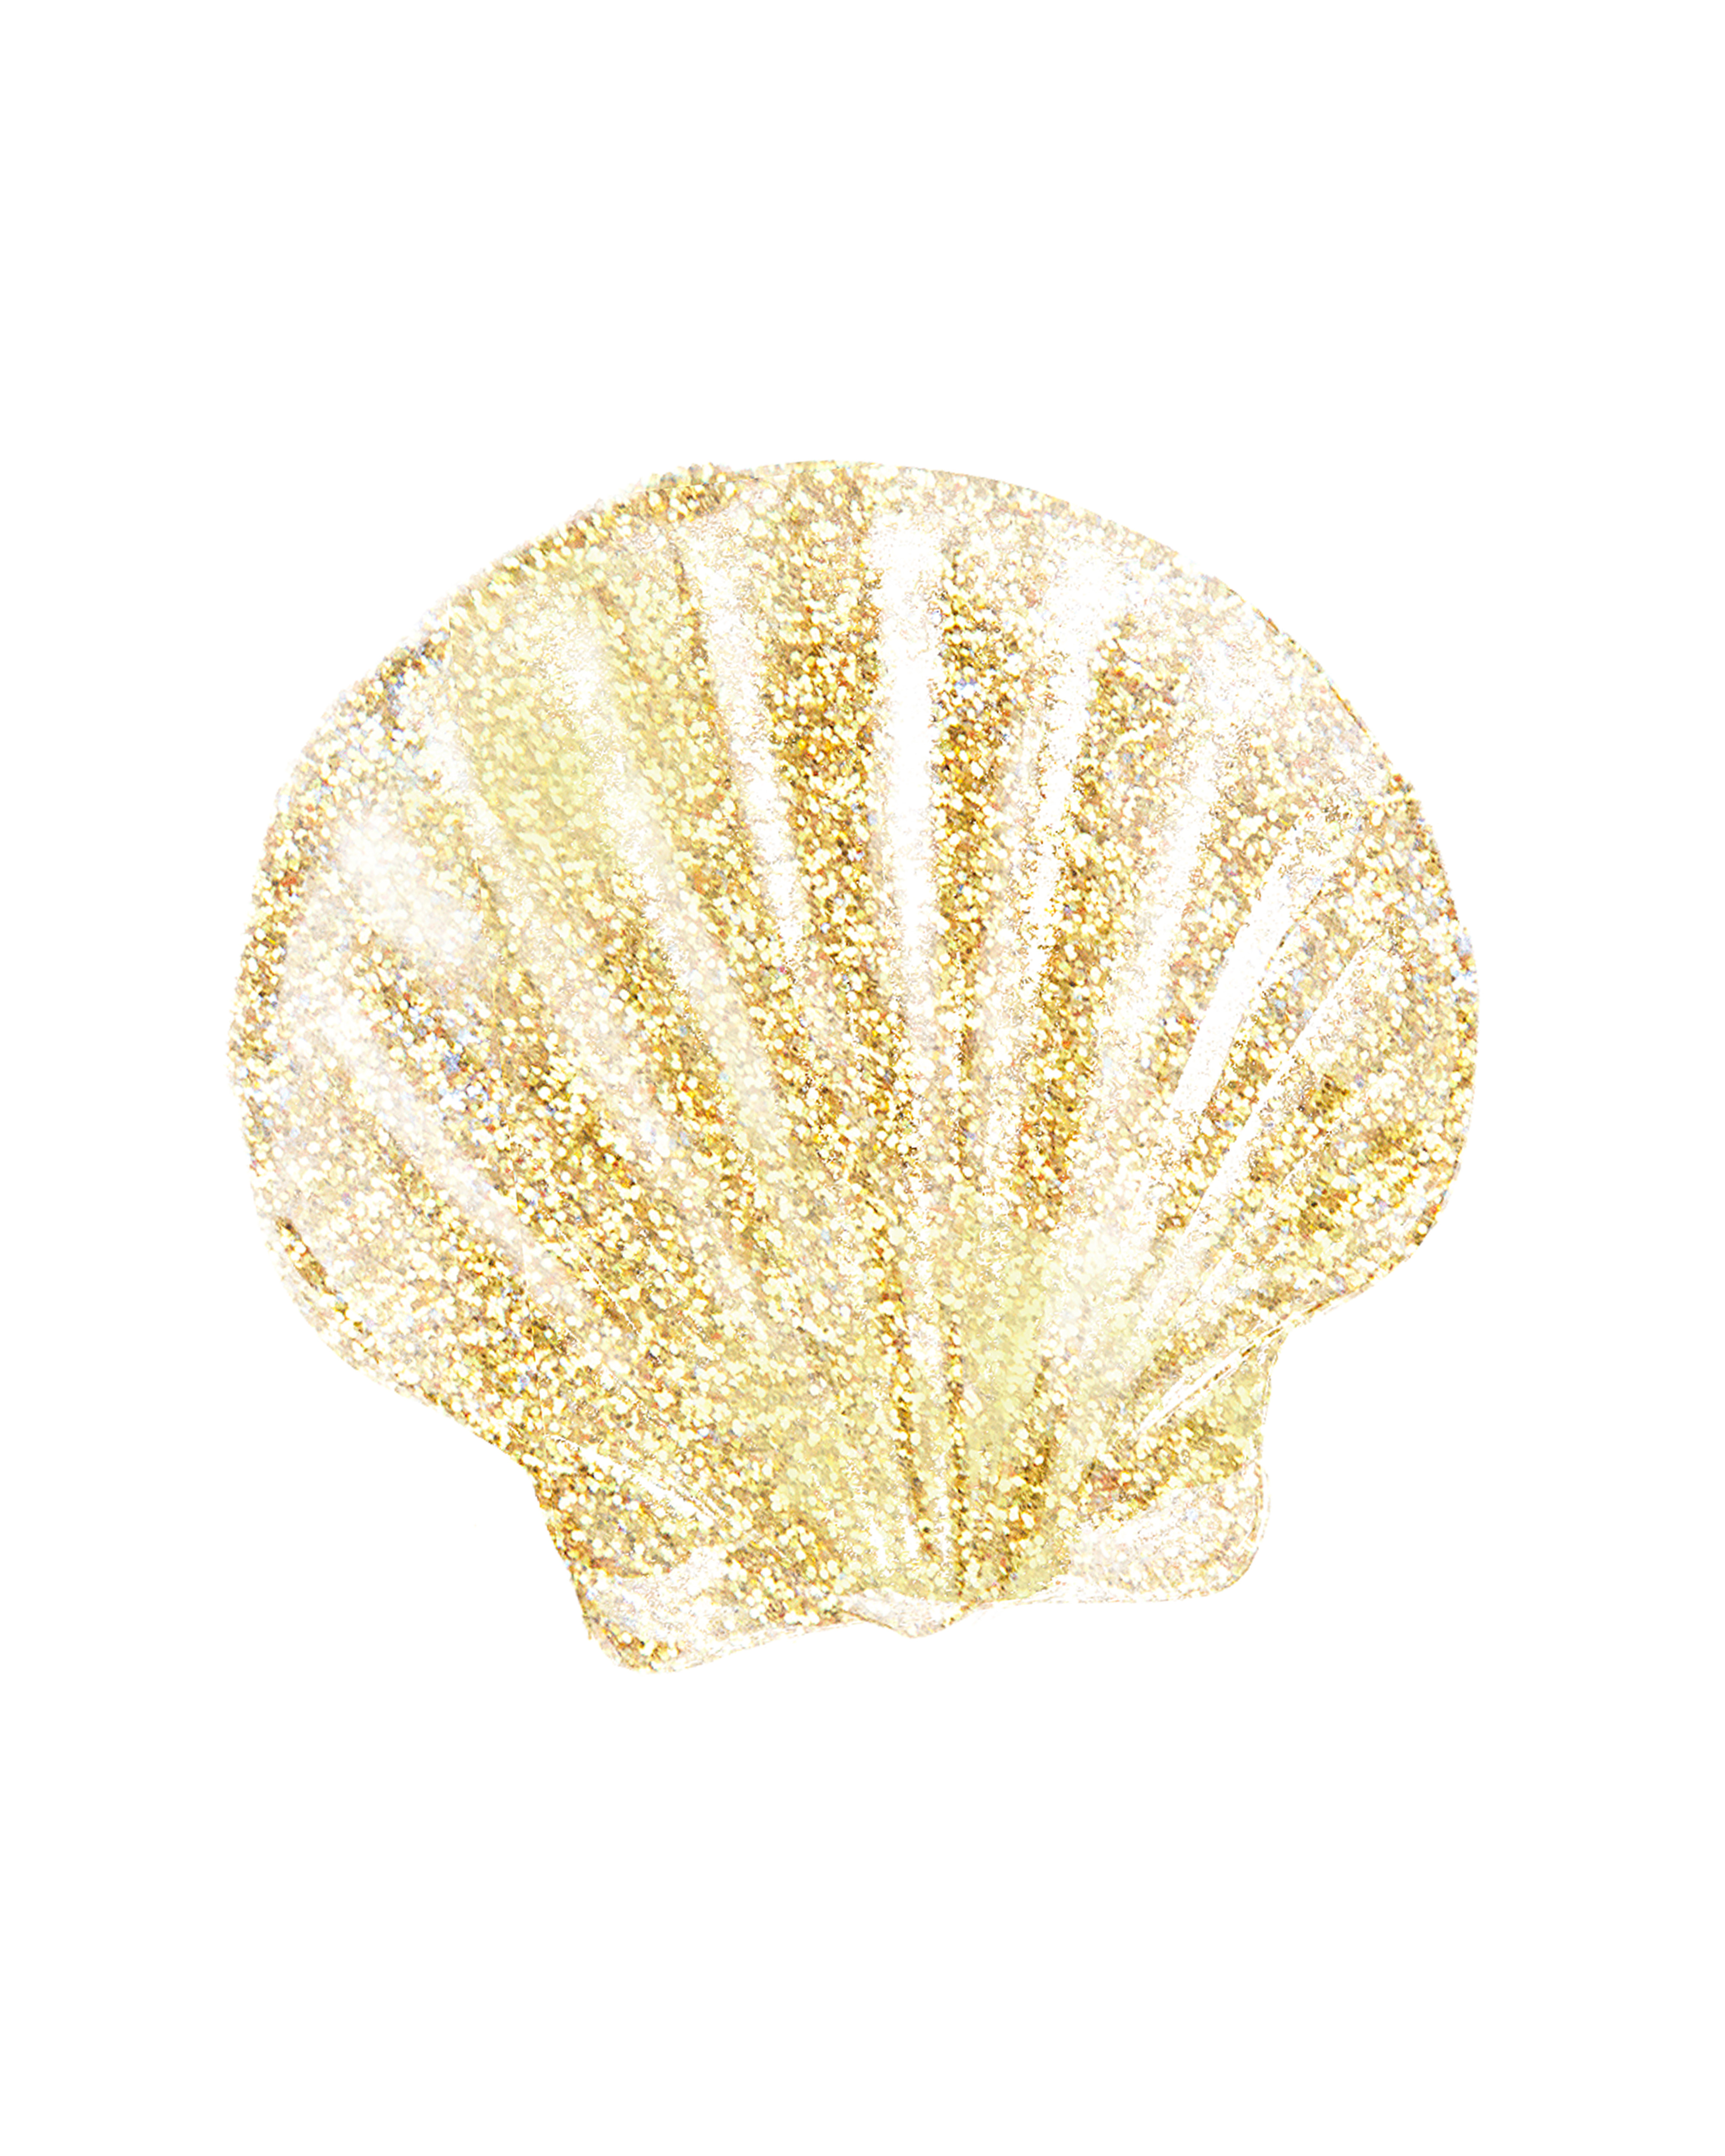 Free Summer Printables - Gold Sea Shell via Holiday Printables Blog | https://www.roseclearfield.com